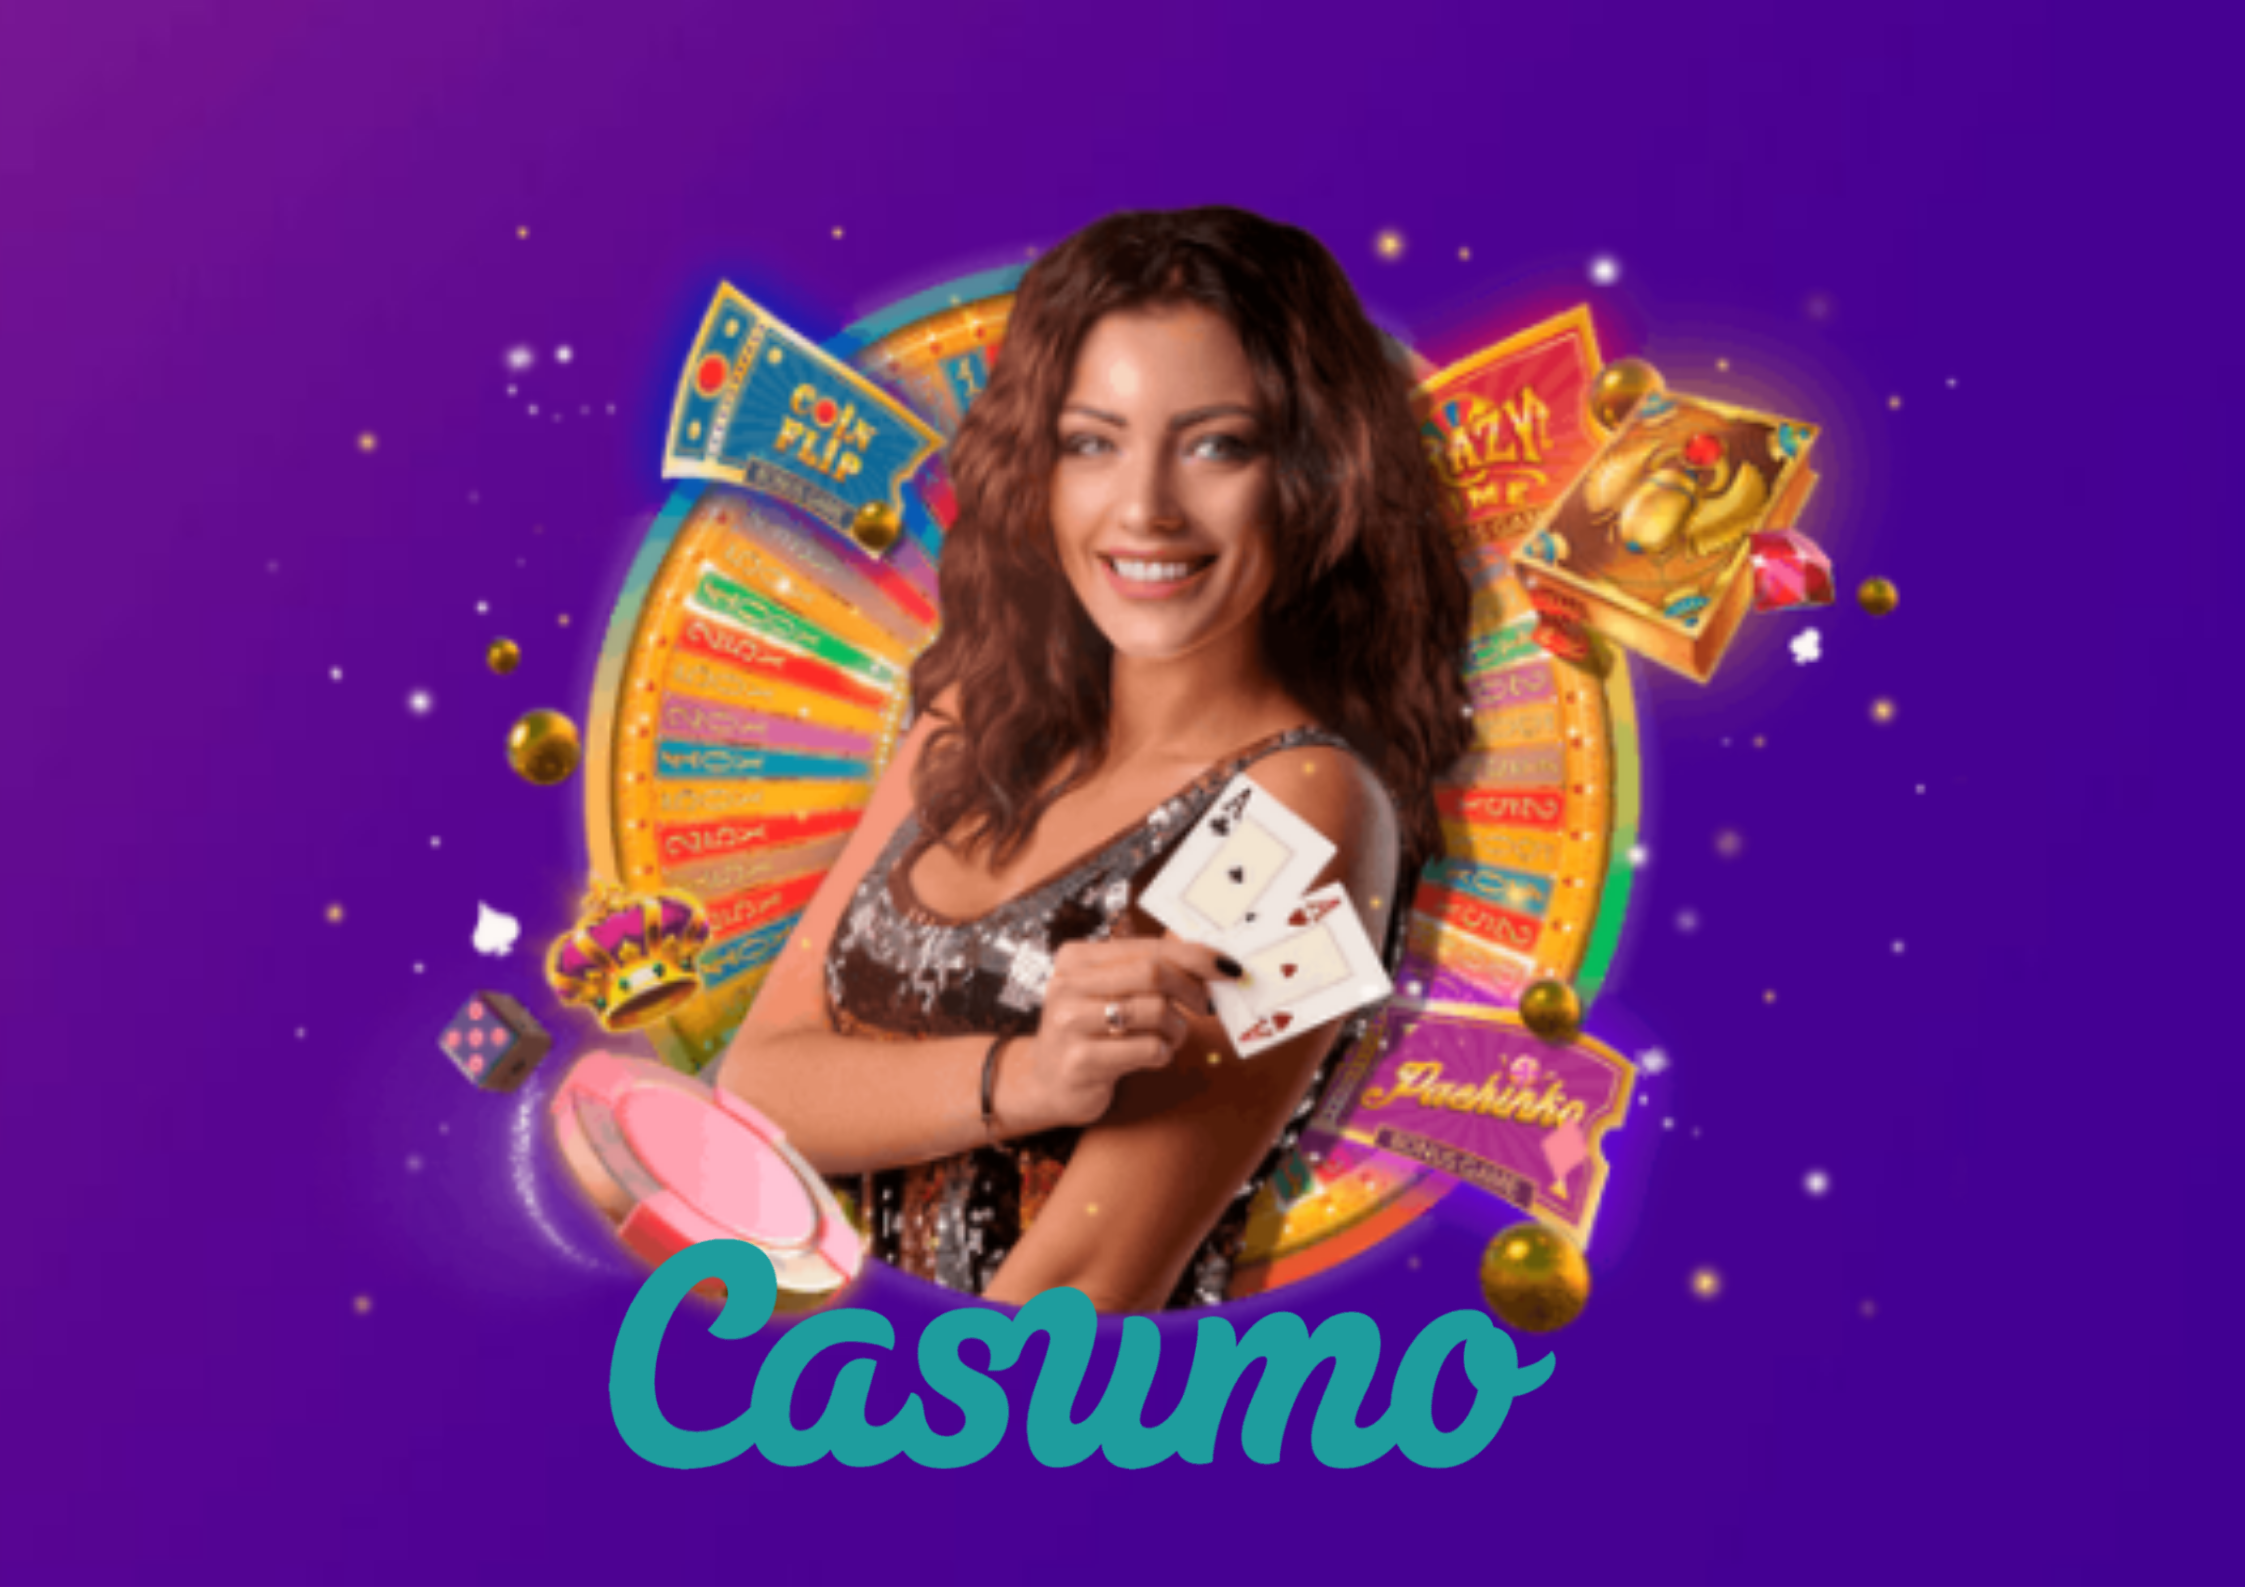 how to place a bet on casumo